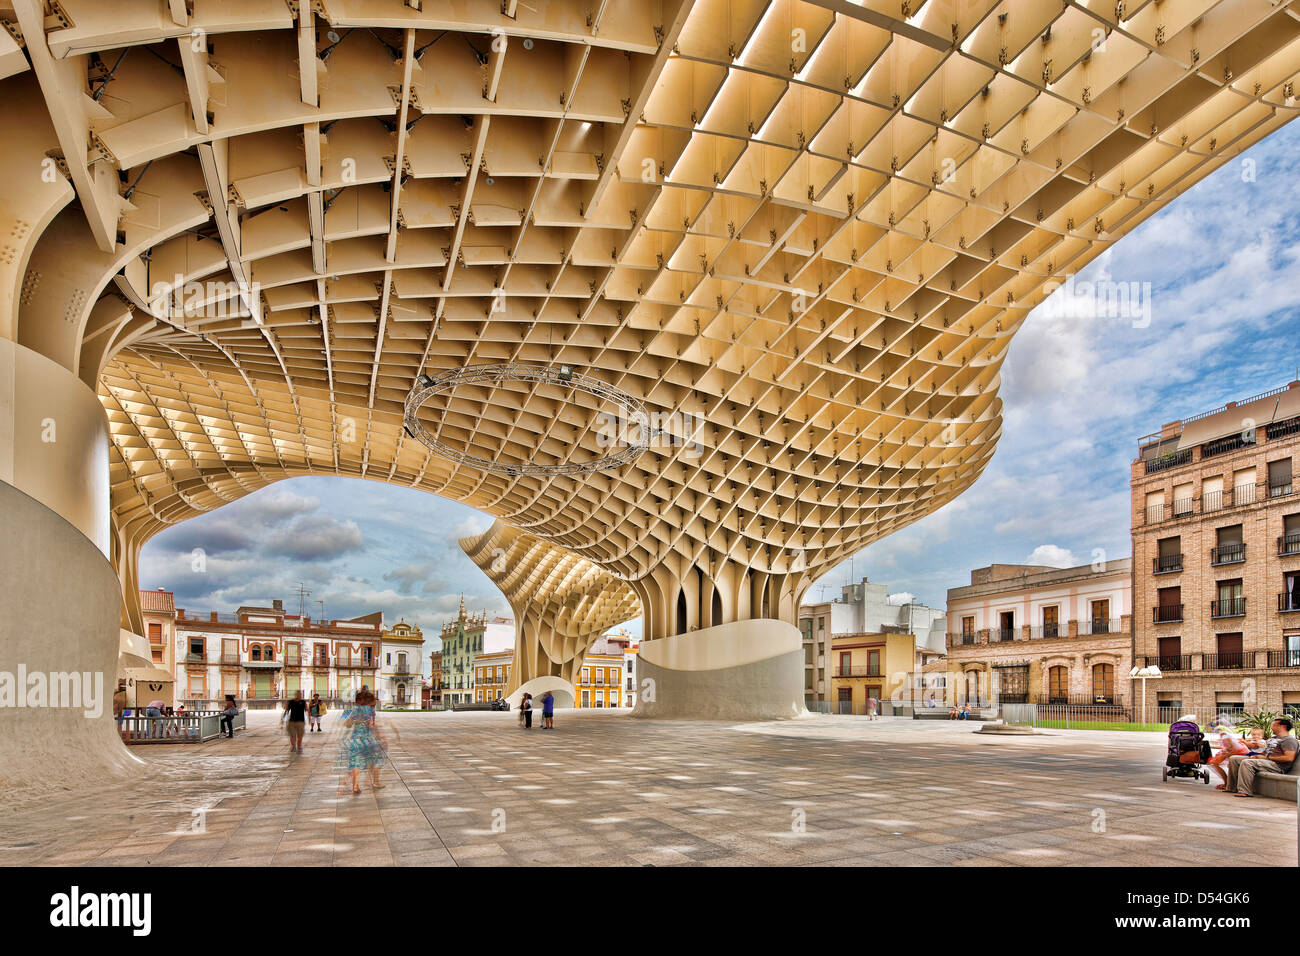 seville spain the metropol parasol in the plaza de la encarnacion stock photo 54805274 alamy. Black Bedroom Furniture Sets. Home Design Ideas